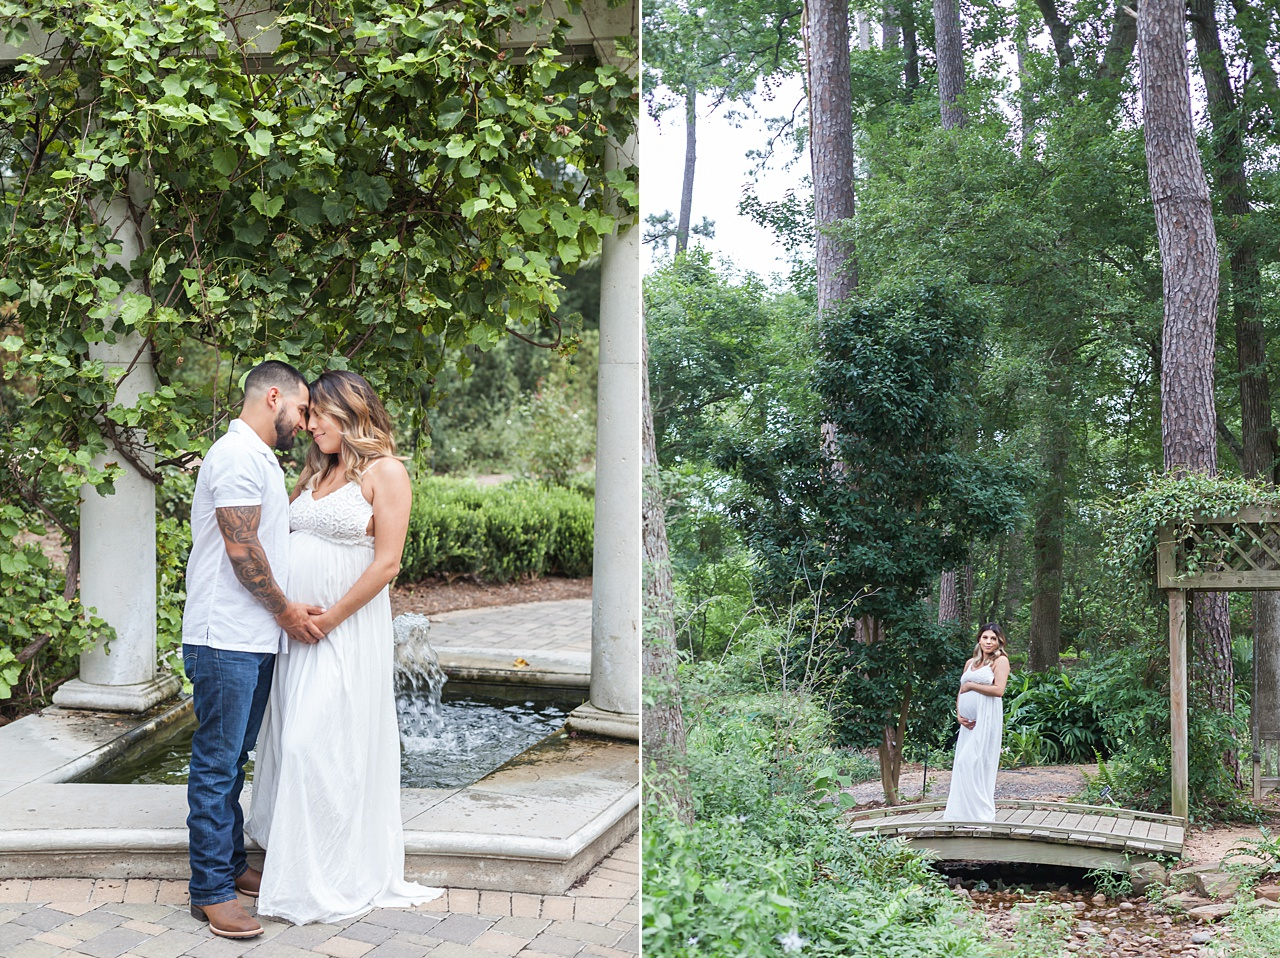 mercer arboretum maternity photo session by kristal bean photography